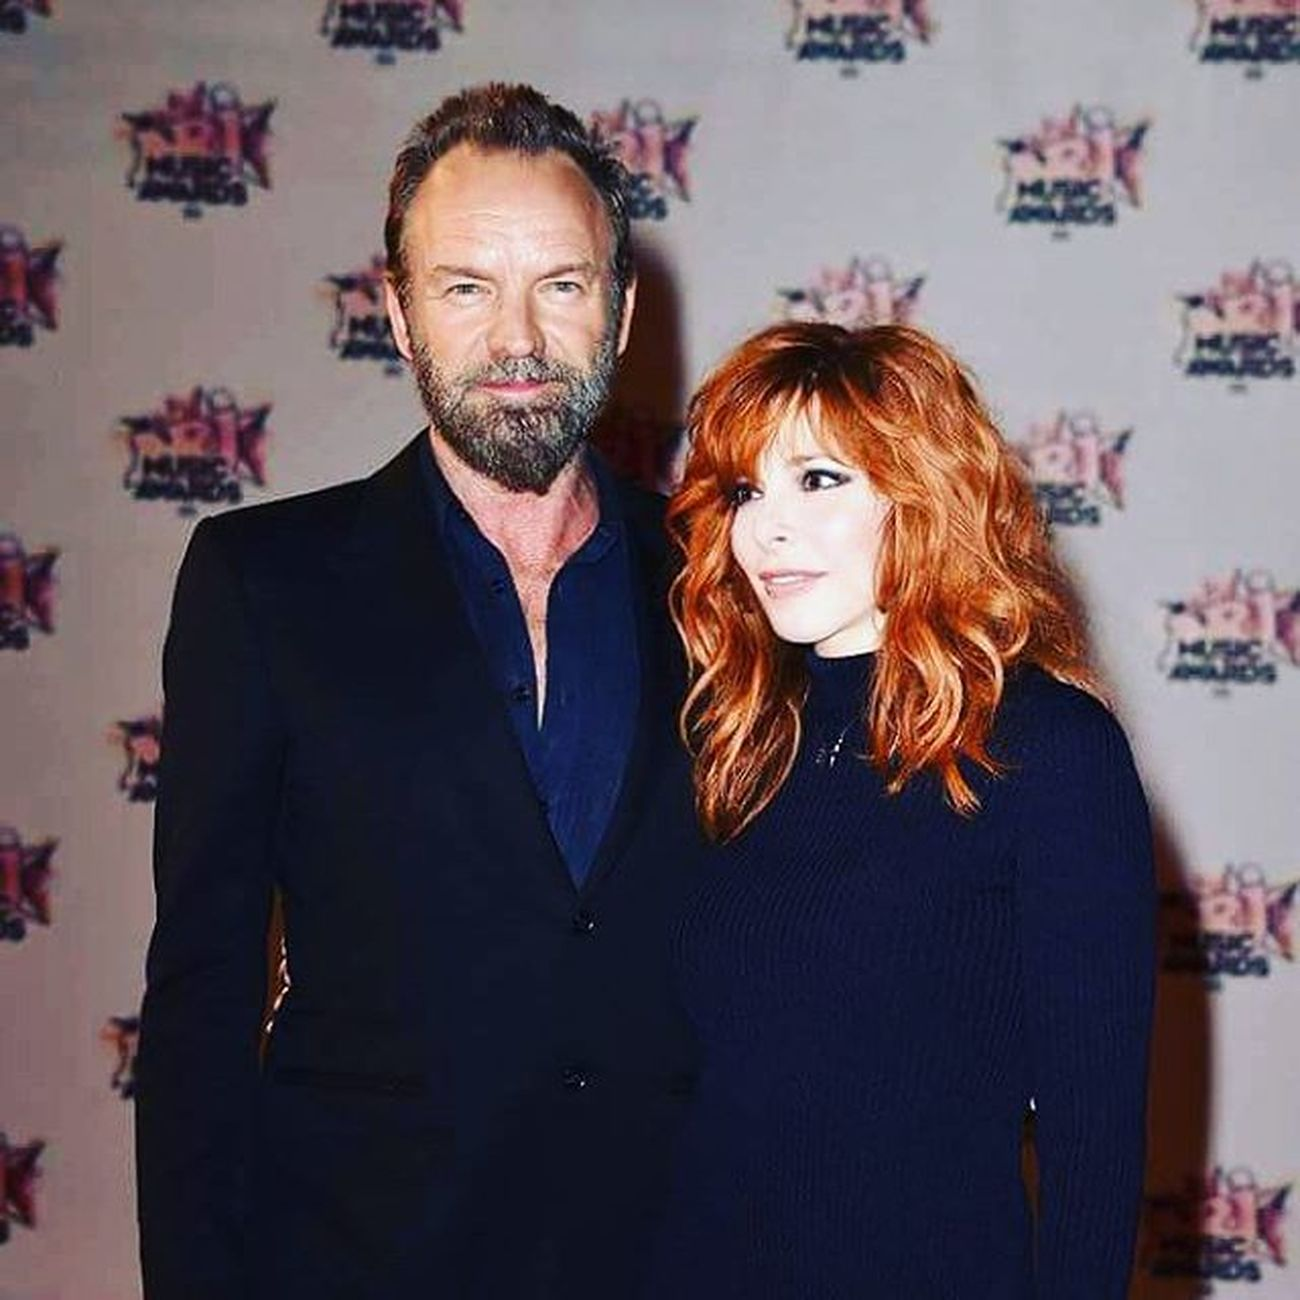 A amazing night With Mylene Farmer And Sting in Cannes!! @mkcherryboom @madonna @justinbieber @alizeeofficiel @ladygaga @sting_insta @theavenermusic @mpokora_official @christineandthequeens @nrjhitmusiconly @nrjmusicawards2016 @tf1 @coldplay @eliegoullding @nikosaliagas @zeki317 @hinterm_horizont_musical @universalmusicfrance @polydorfrance Mylenefarmer Mylene Farmer Mf NRJ Nrjmusicawards Sting TheAvener Magic Duo Amazing Frenchartist Interstellar Interstellaires New Music Cannes France Awards Tf1 Stolencar Son Single Cd